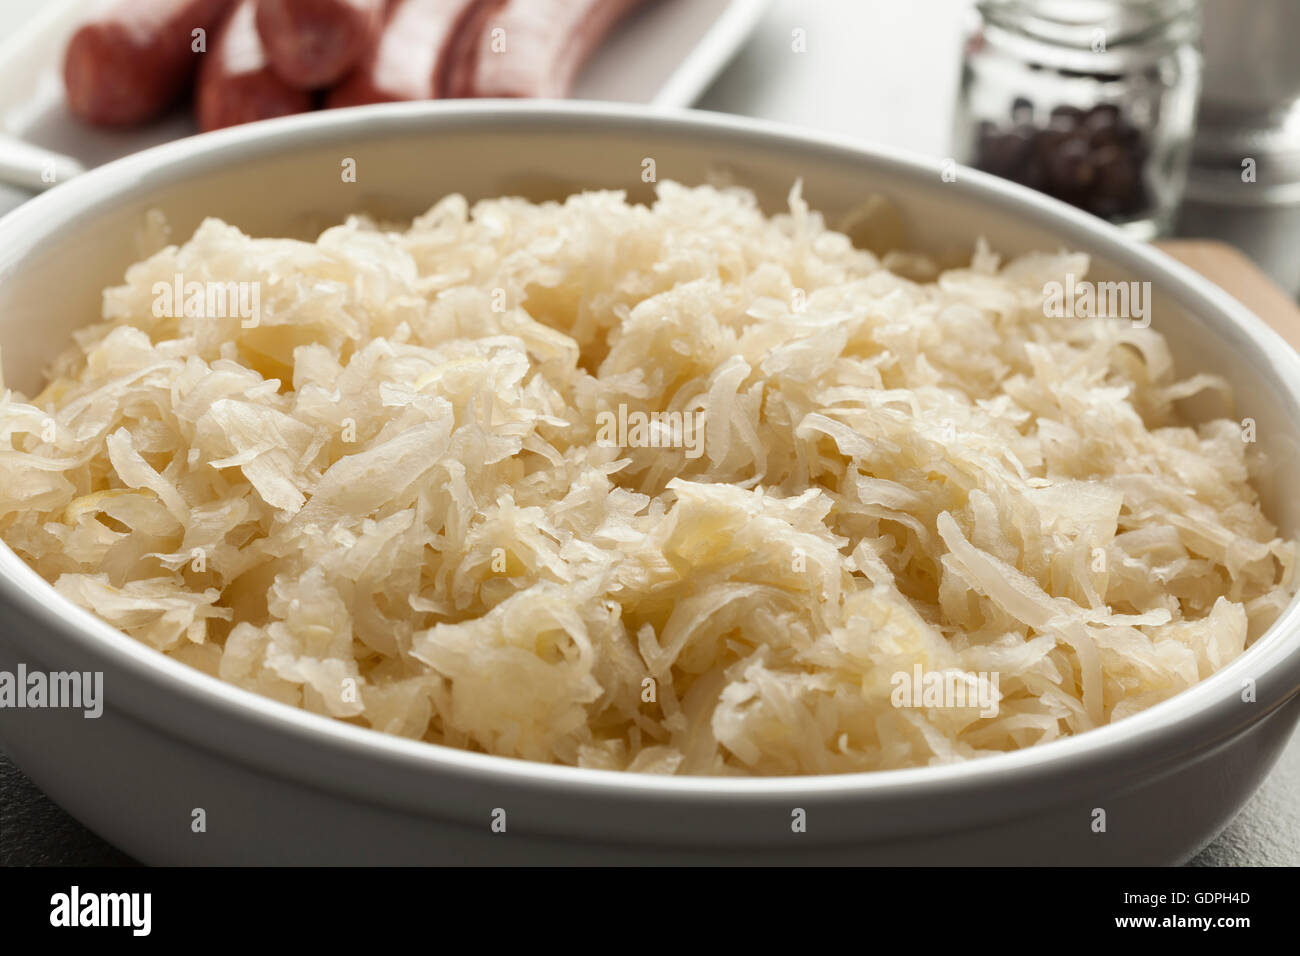 Bowl with raw preserved sauerkraut ready to cook - Stock Image